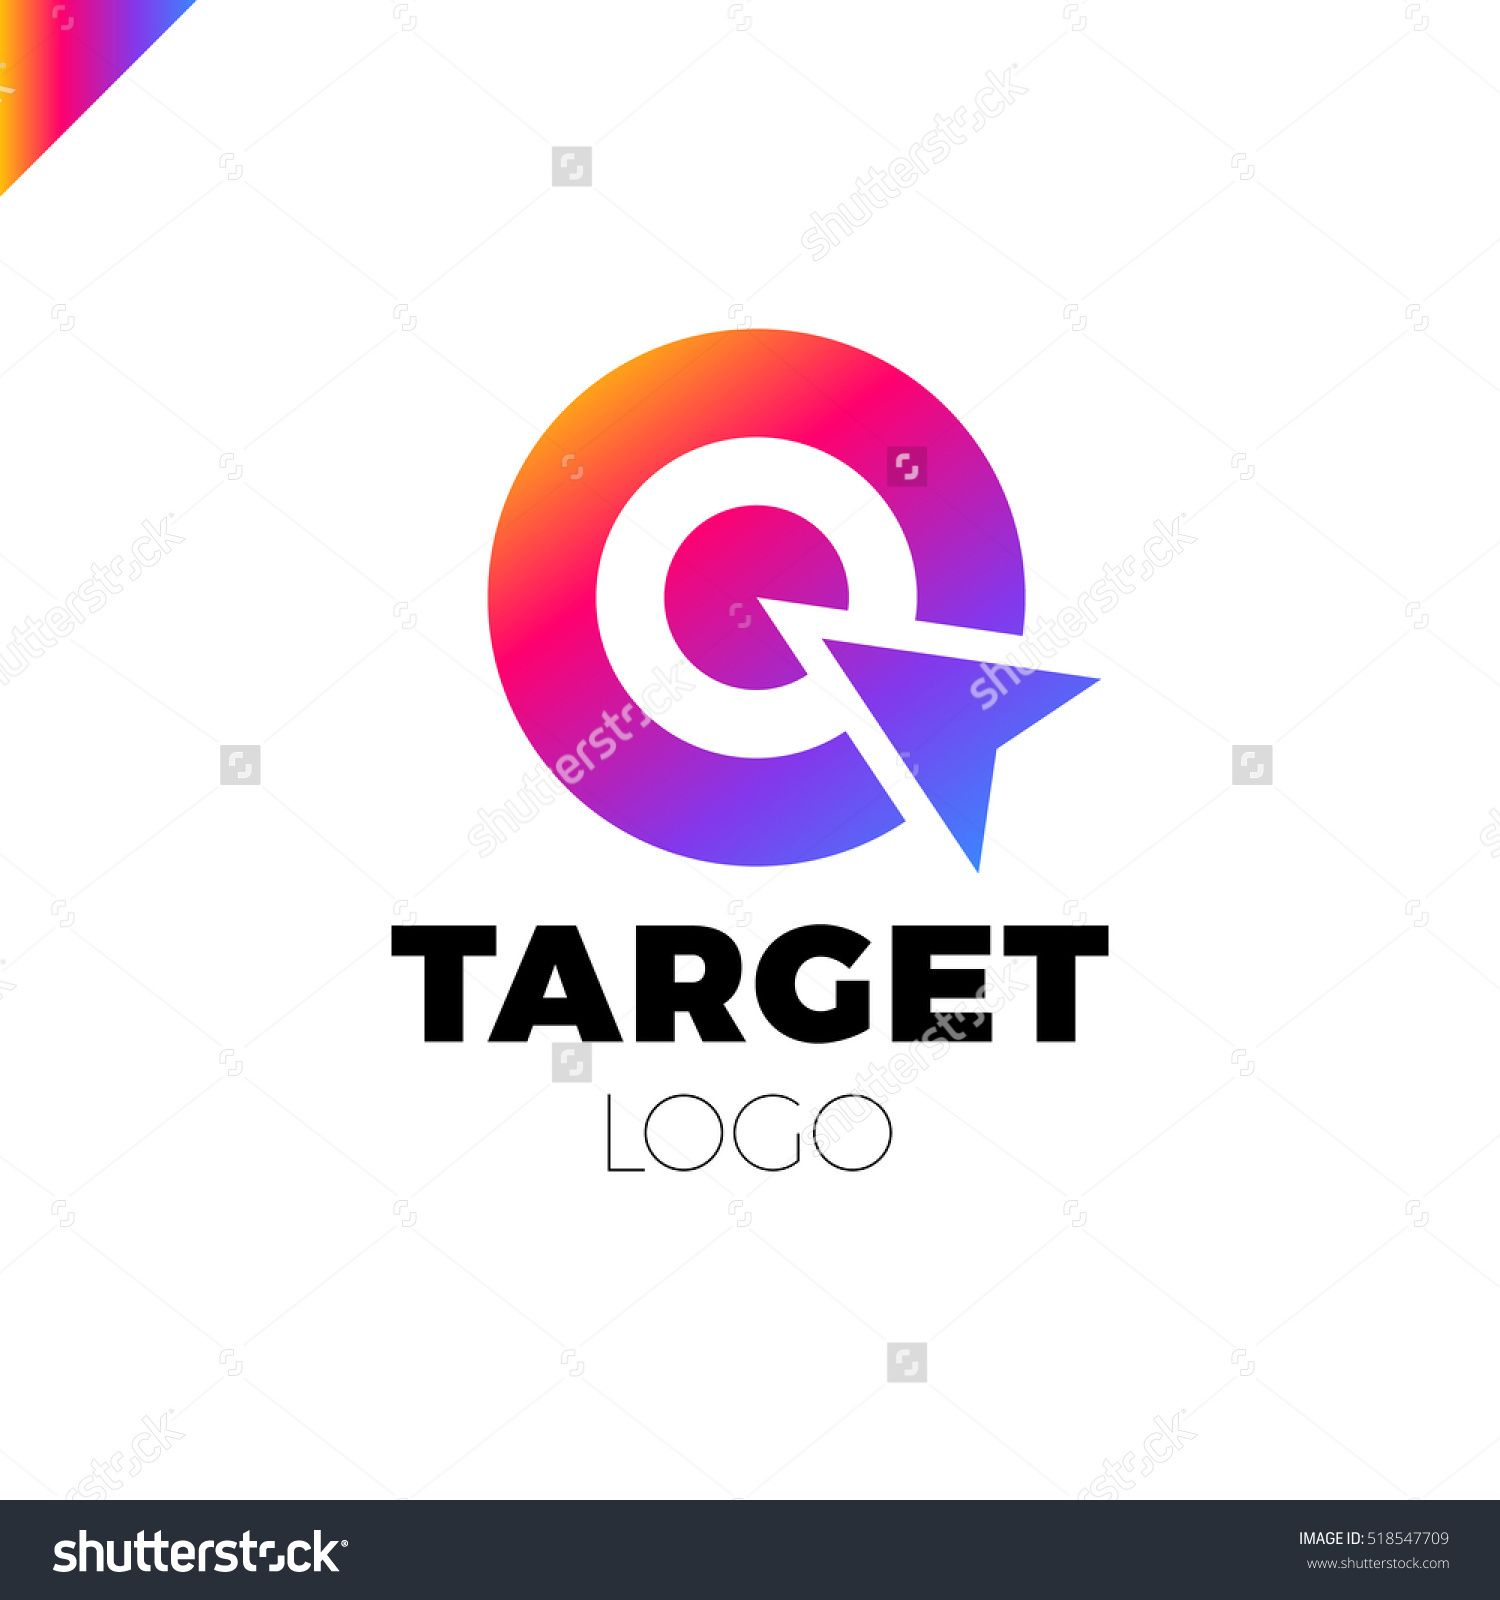 Target Hit Two Circle With Arrow Branding Identity Corporate Vector Logo Design Template Isolated Rainbow Grad Vector Logo Design Logo Design Template Pin Logo